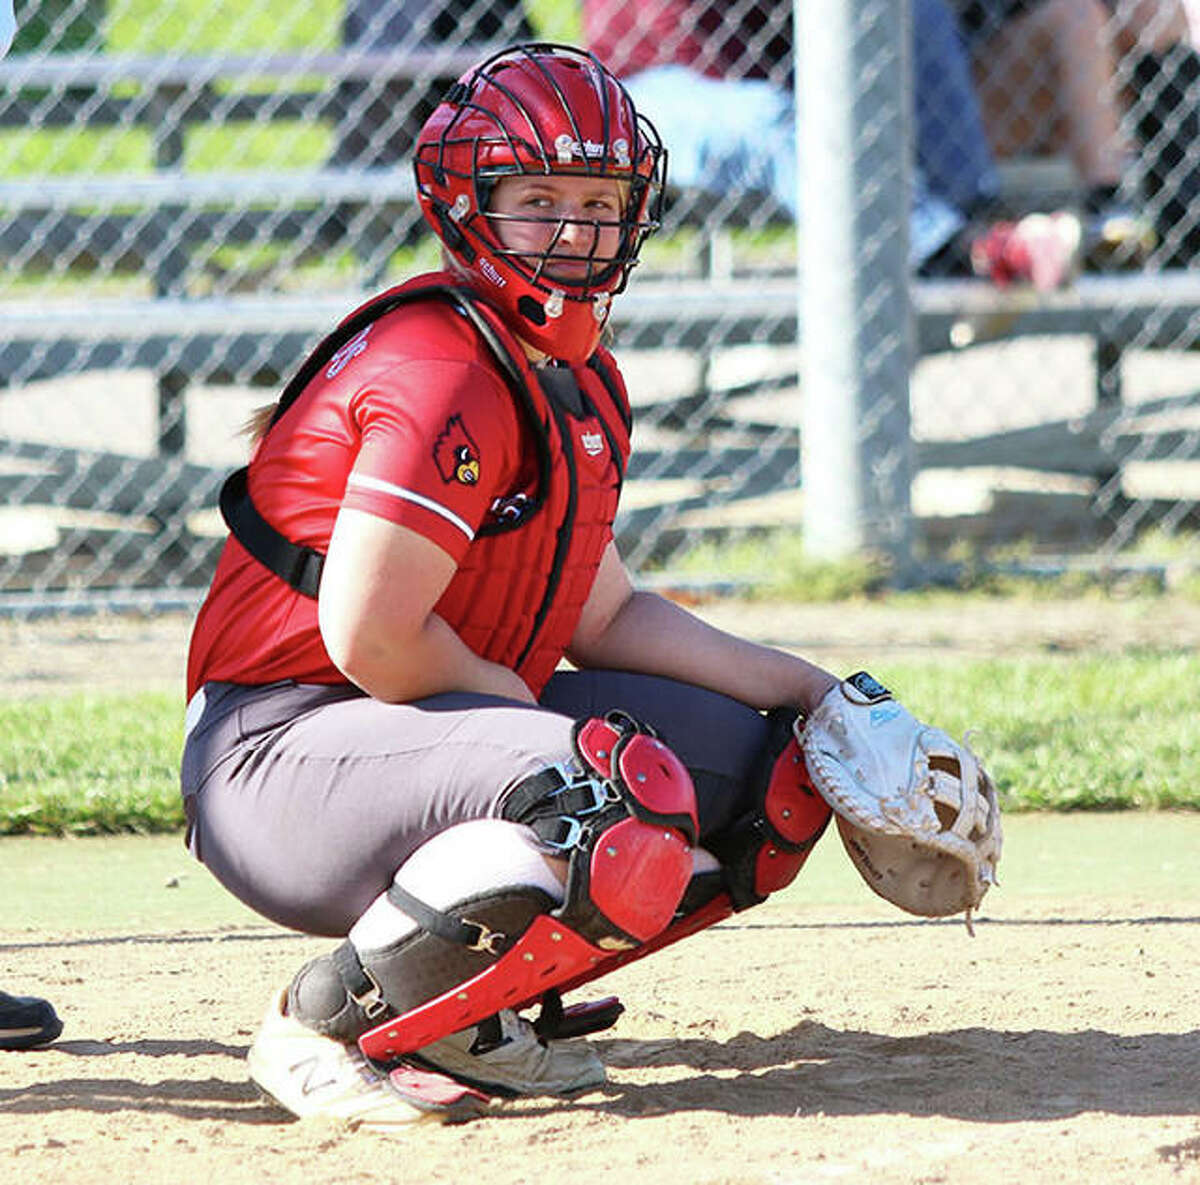 Alton catcher Lynna Fischer looks to the dugout for a pitch sign during a game last season at AHS in Godfrey. Fischer led the SWC in homers and slugging percentage as a senior.